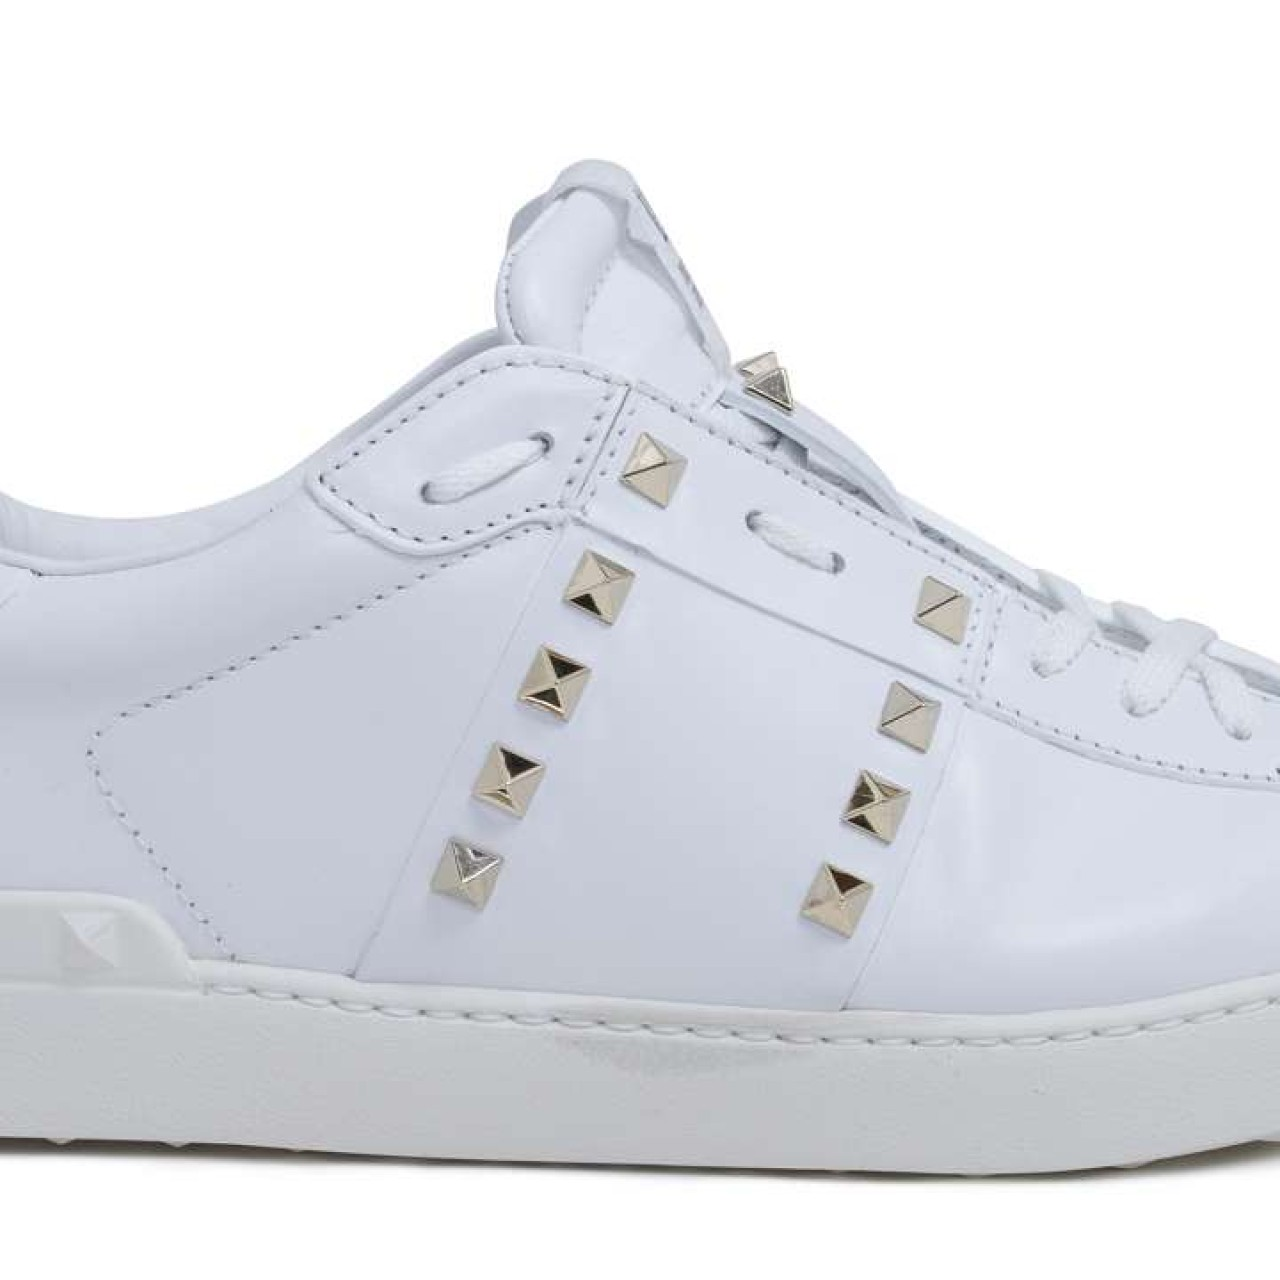 316bbf9a5327d How to keep your white sneakers spotless in Hong Kong, and whether ...